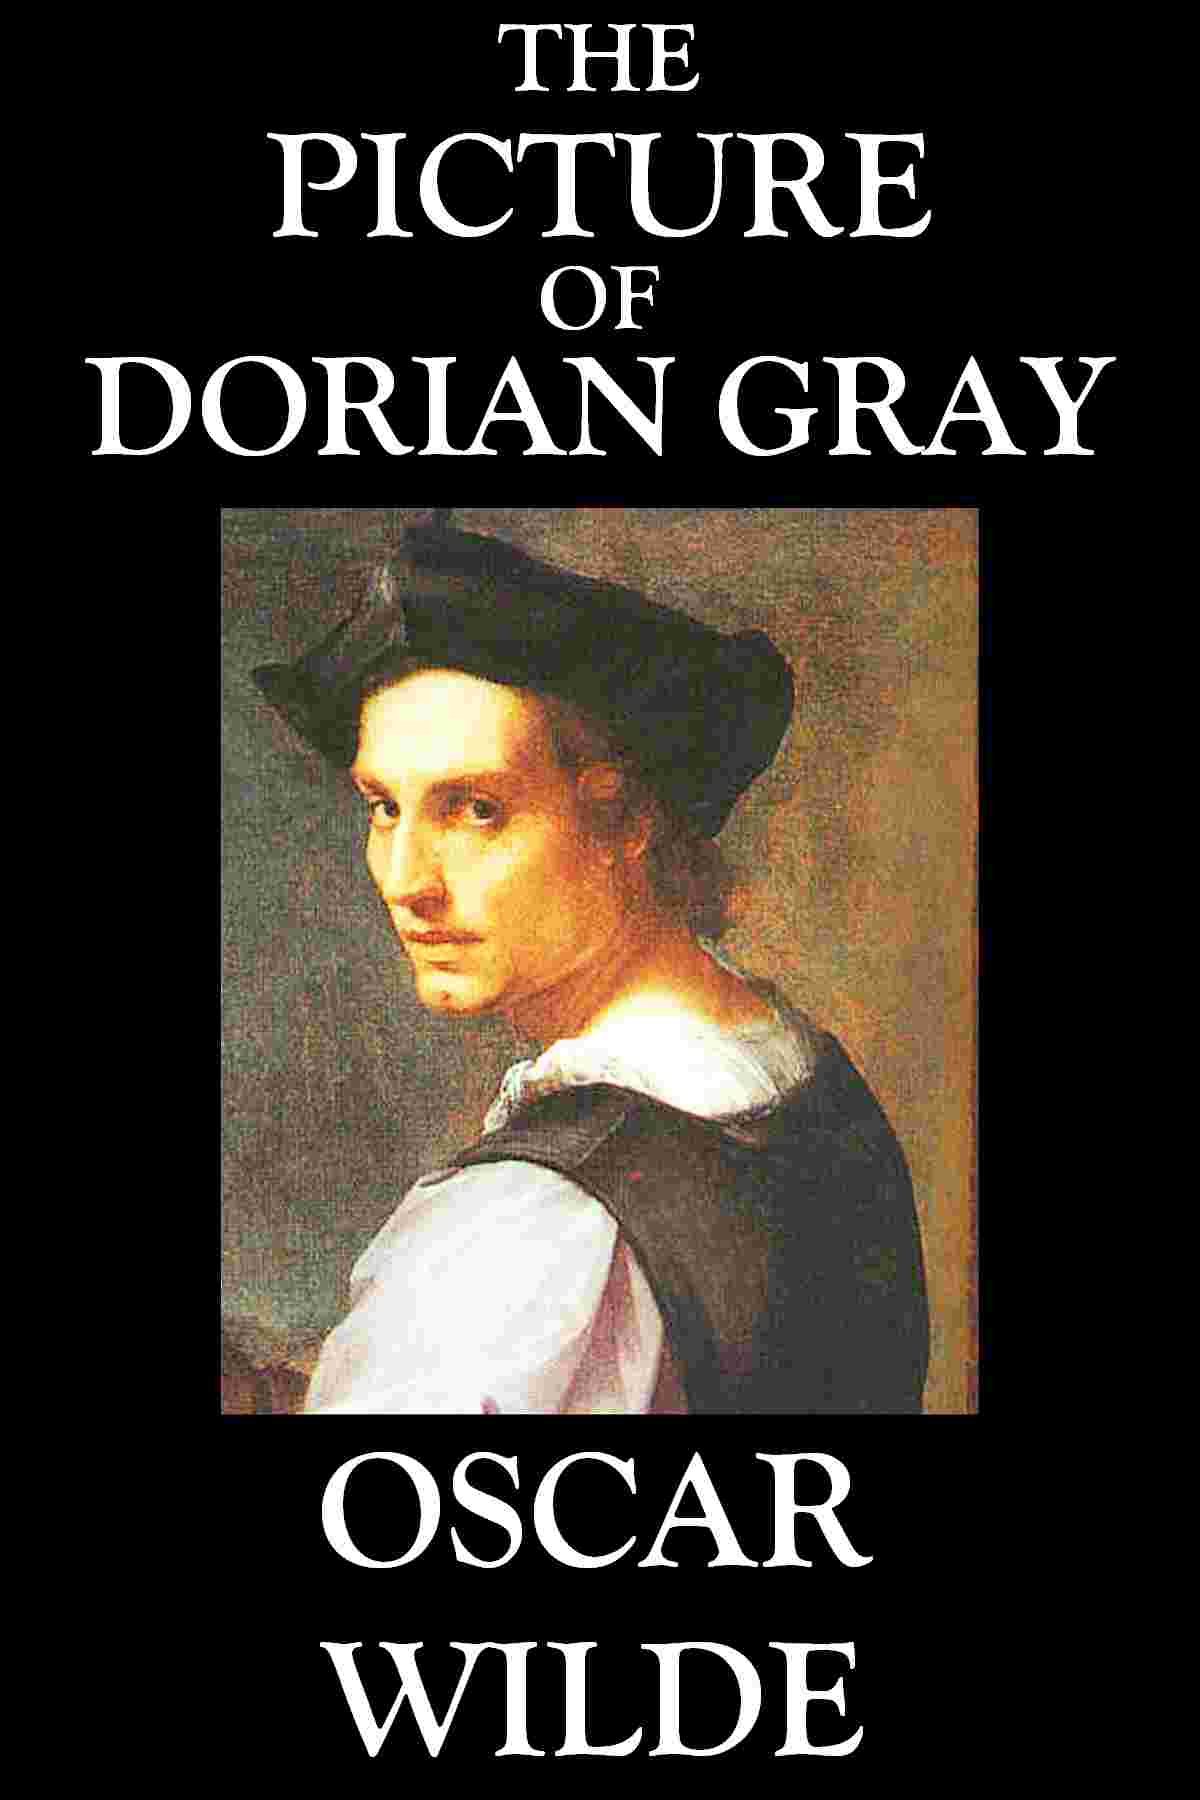 Source: http://macmugmic.files.wordpress.com/2014/09/dorian-gray.jpg